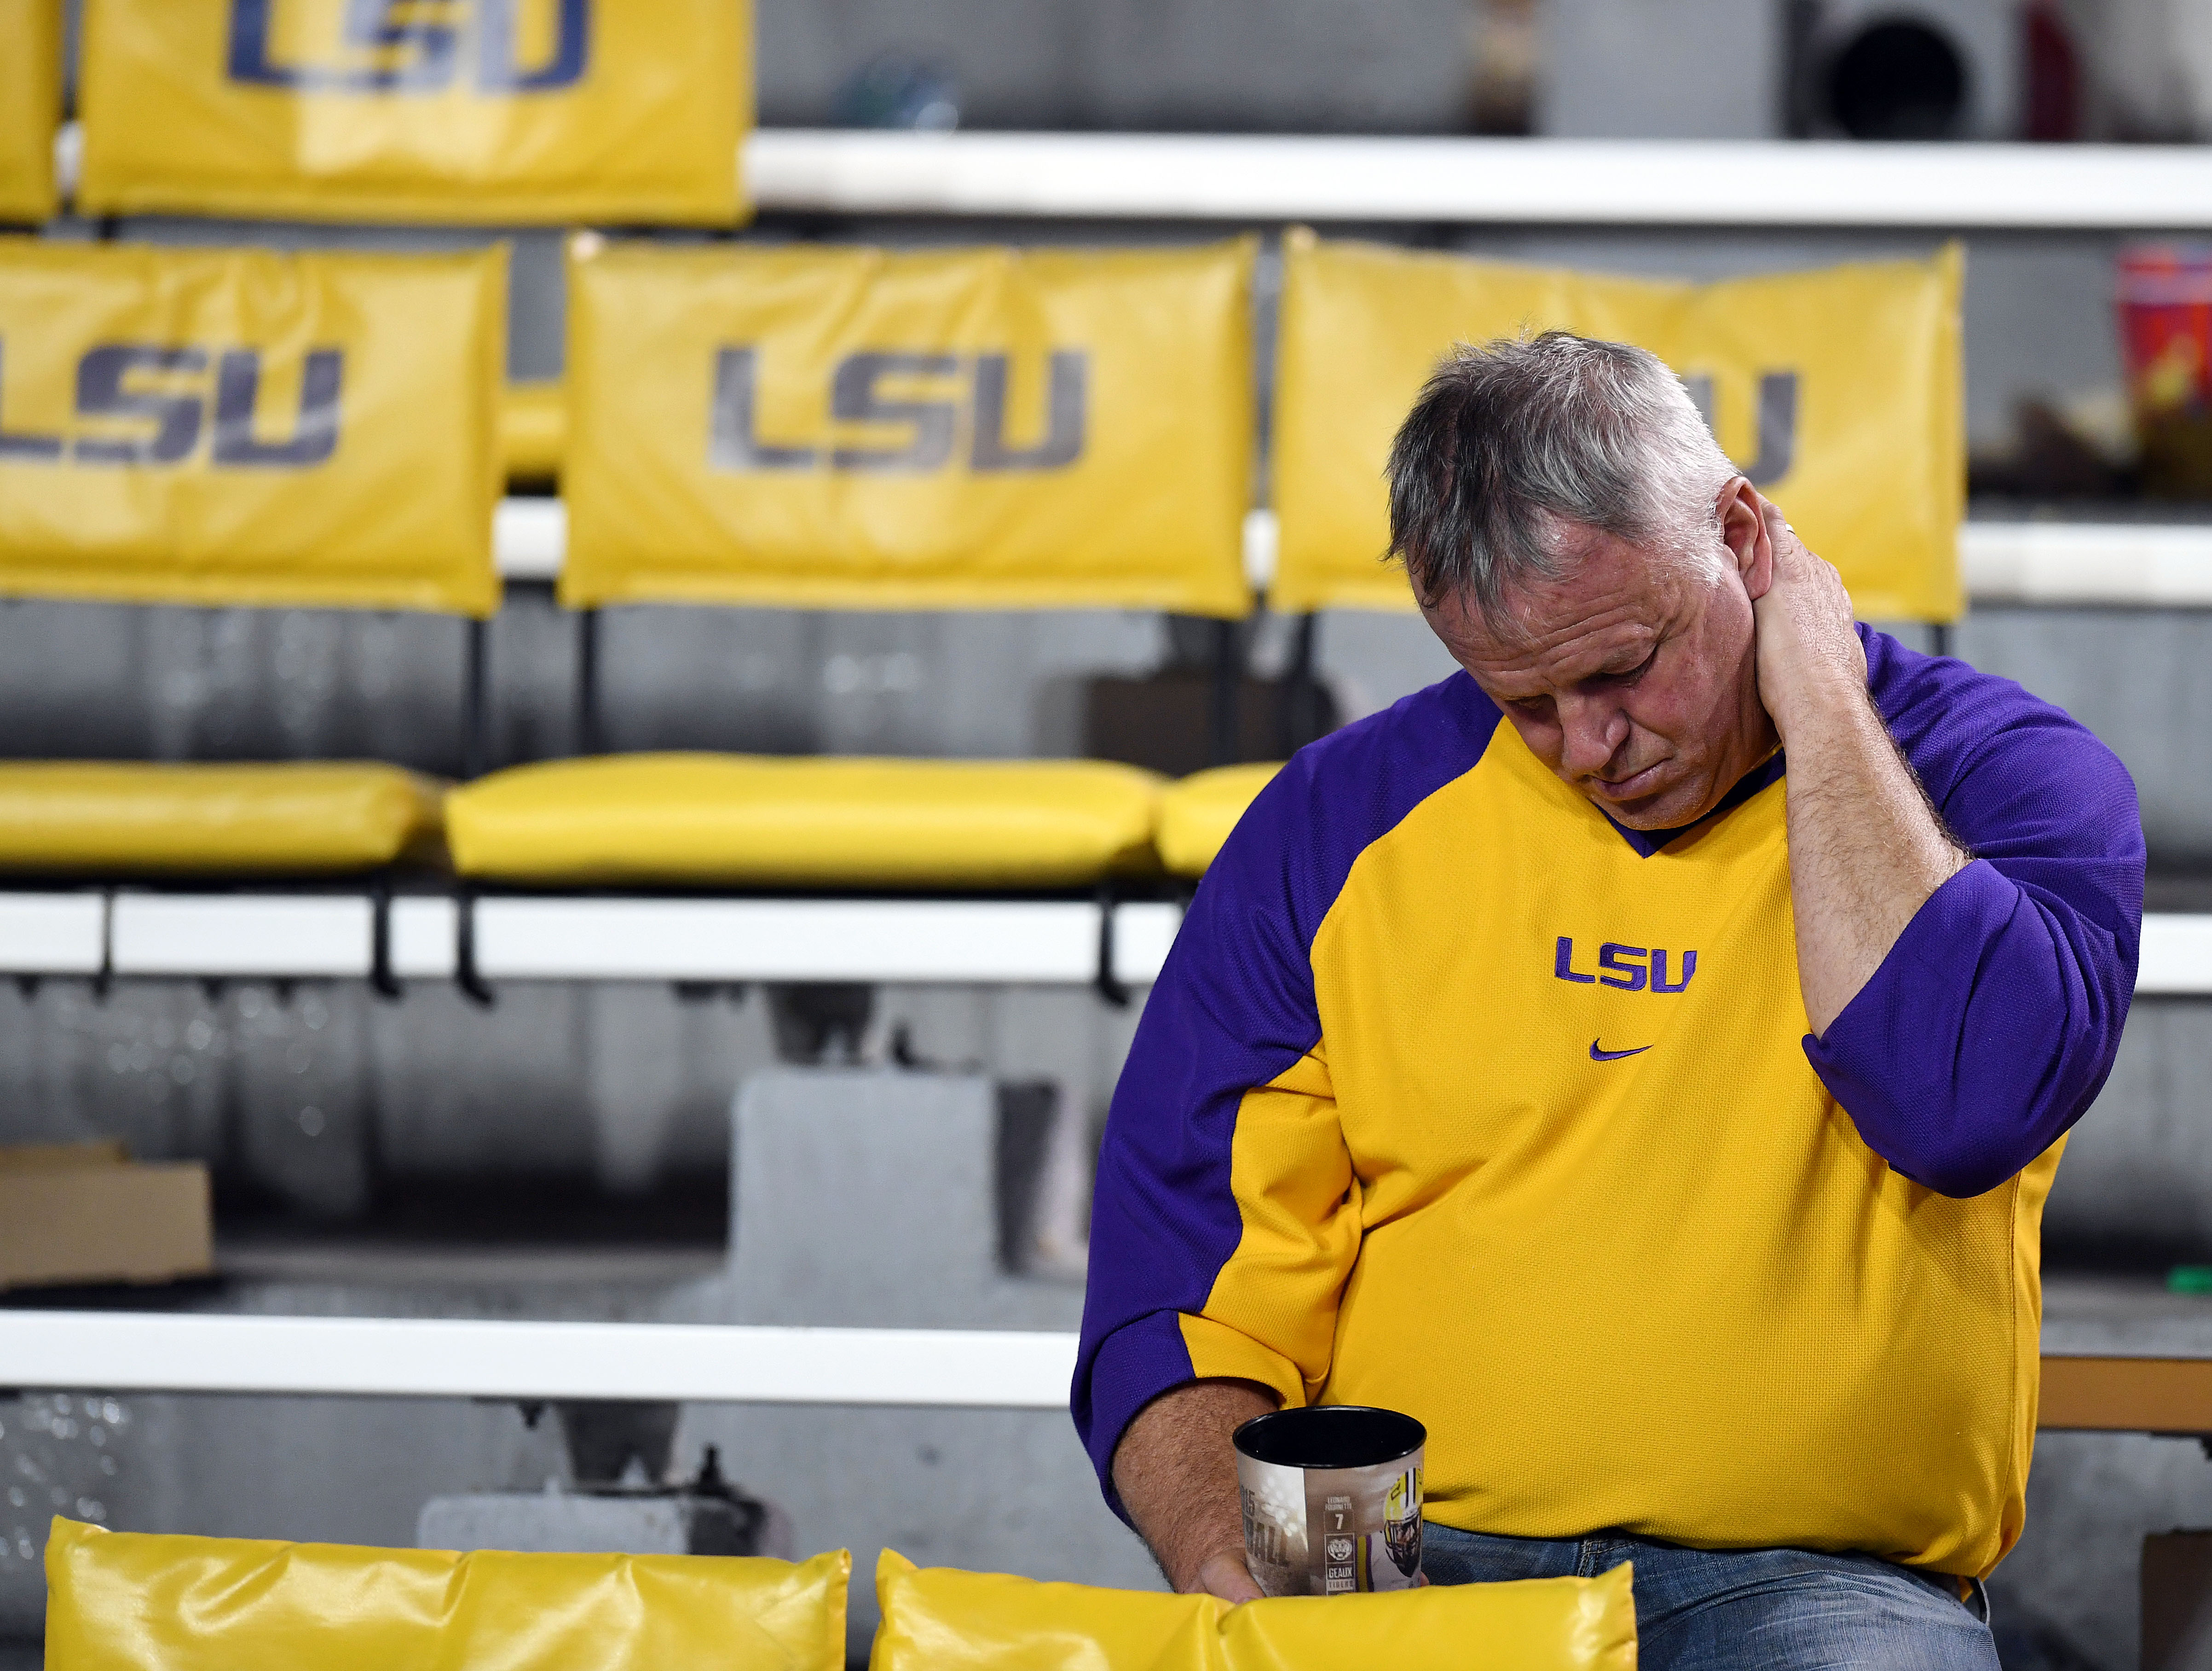 Nov 5, 2016; Baton Rouge, LA, USA; Tigers fans remain in the stands following the LSU Tigers 10-0 loss to the Alabama Crimson Tide at Tiger Stadium. Mandatory Credit: John David Mercer-USA TODAY Sports